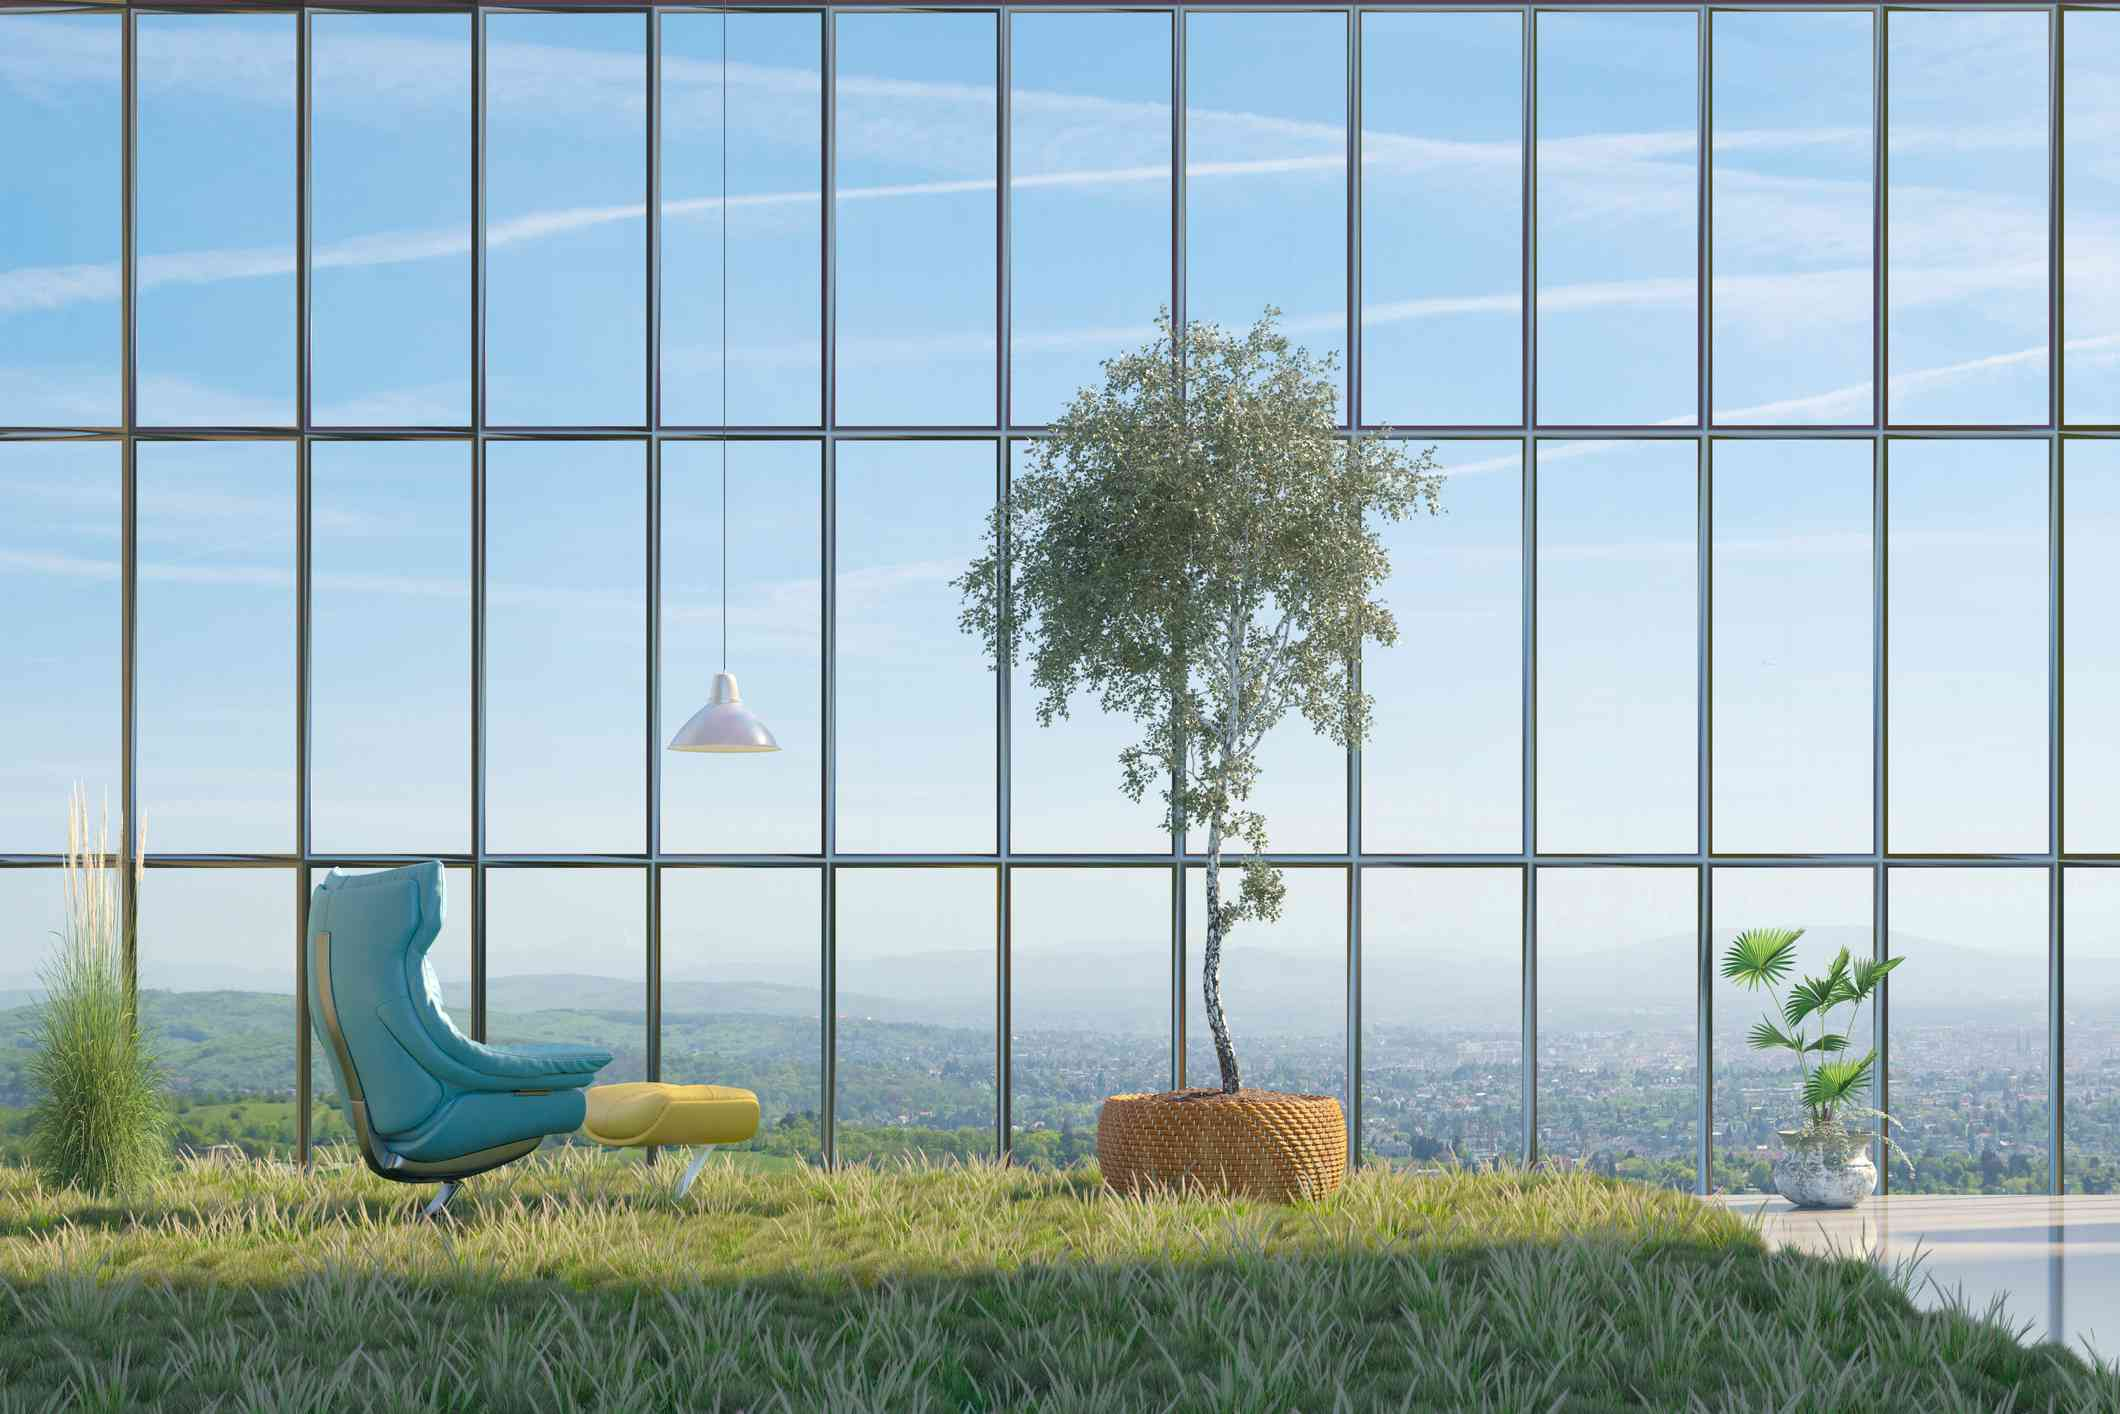 A future indoor-outdoor scene with modern furniture.